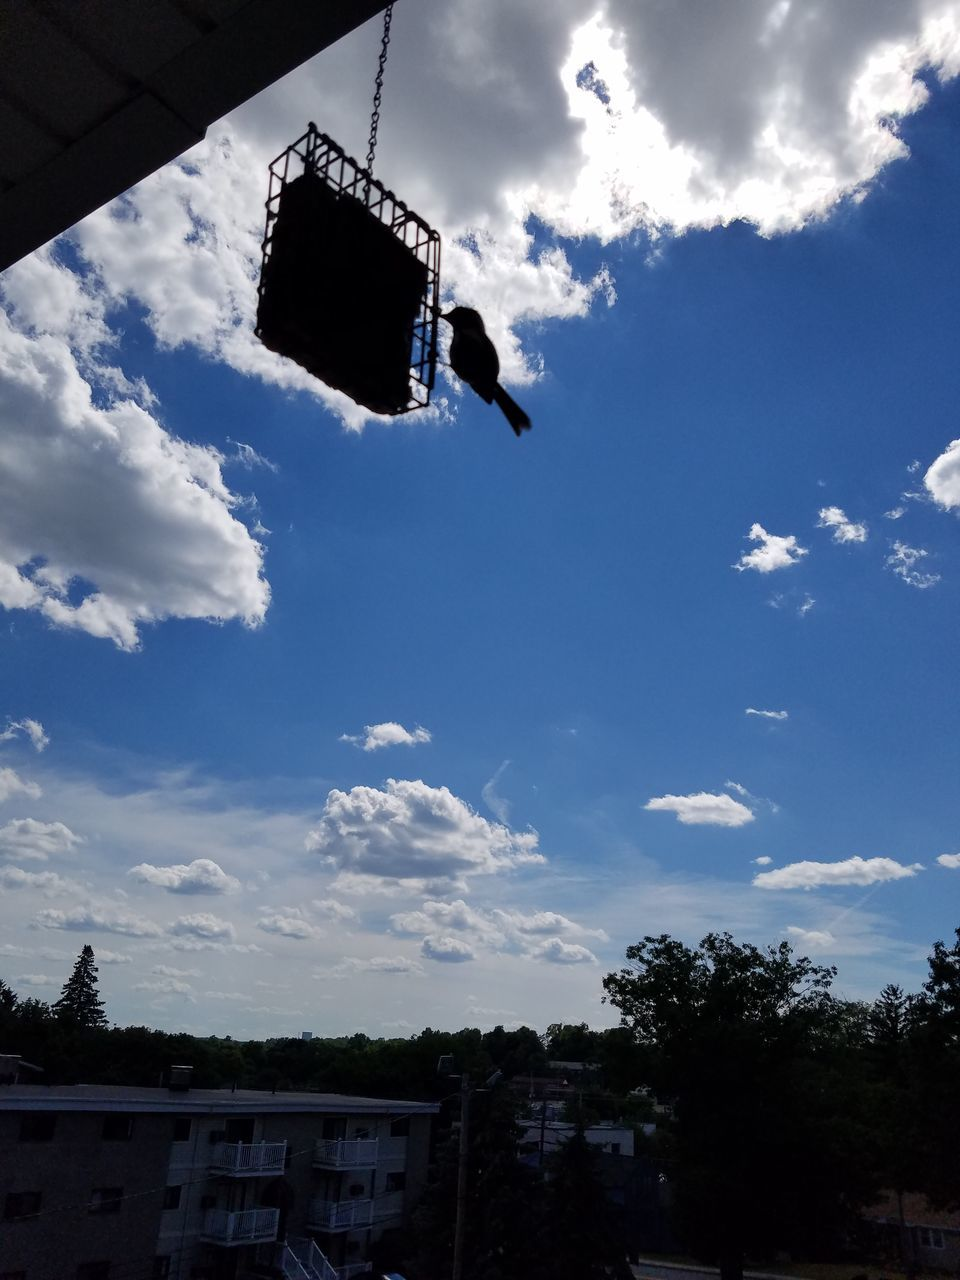 low angle view, sky, cloud - sky, flying, outdoors, bird, hanging, no people, day, tree, animals in the wild, animal themes, nature, spread wings, building exterior